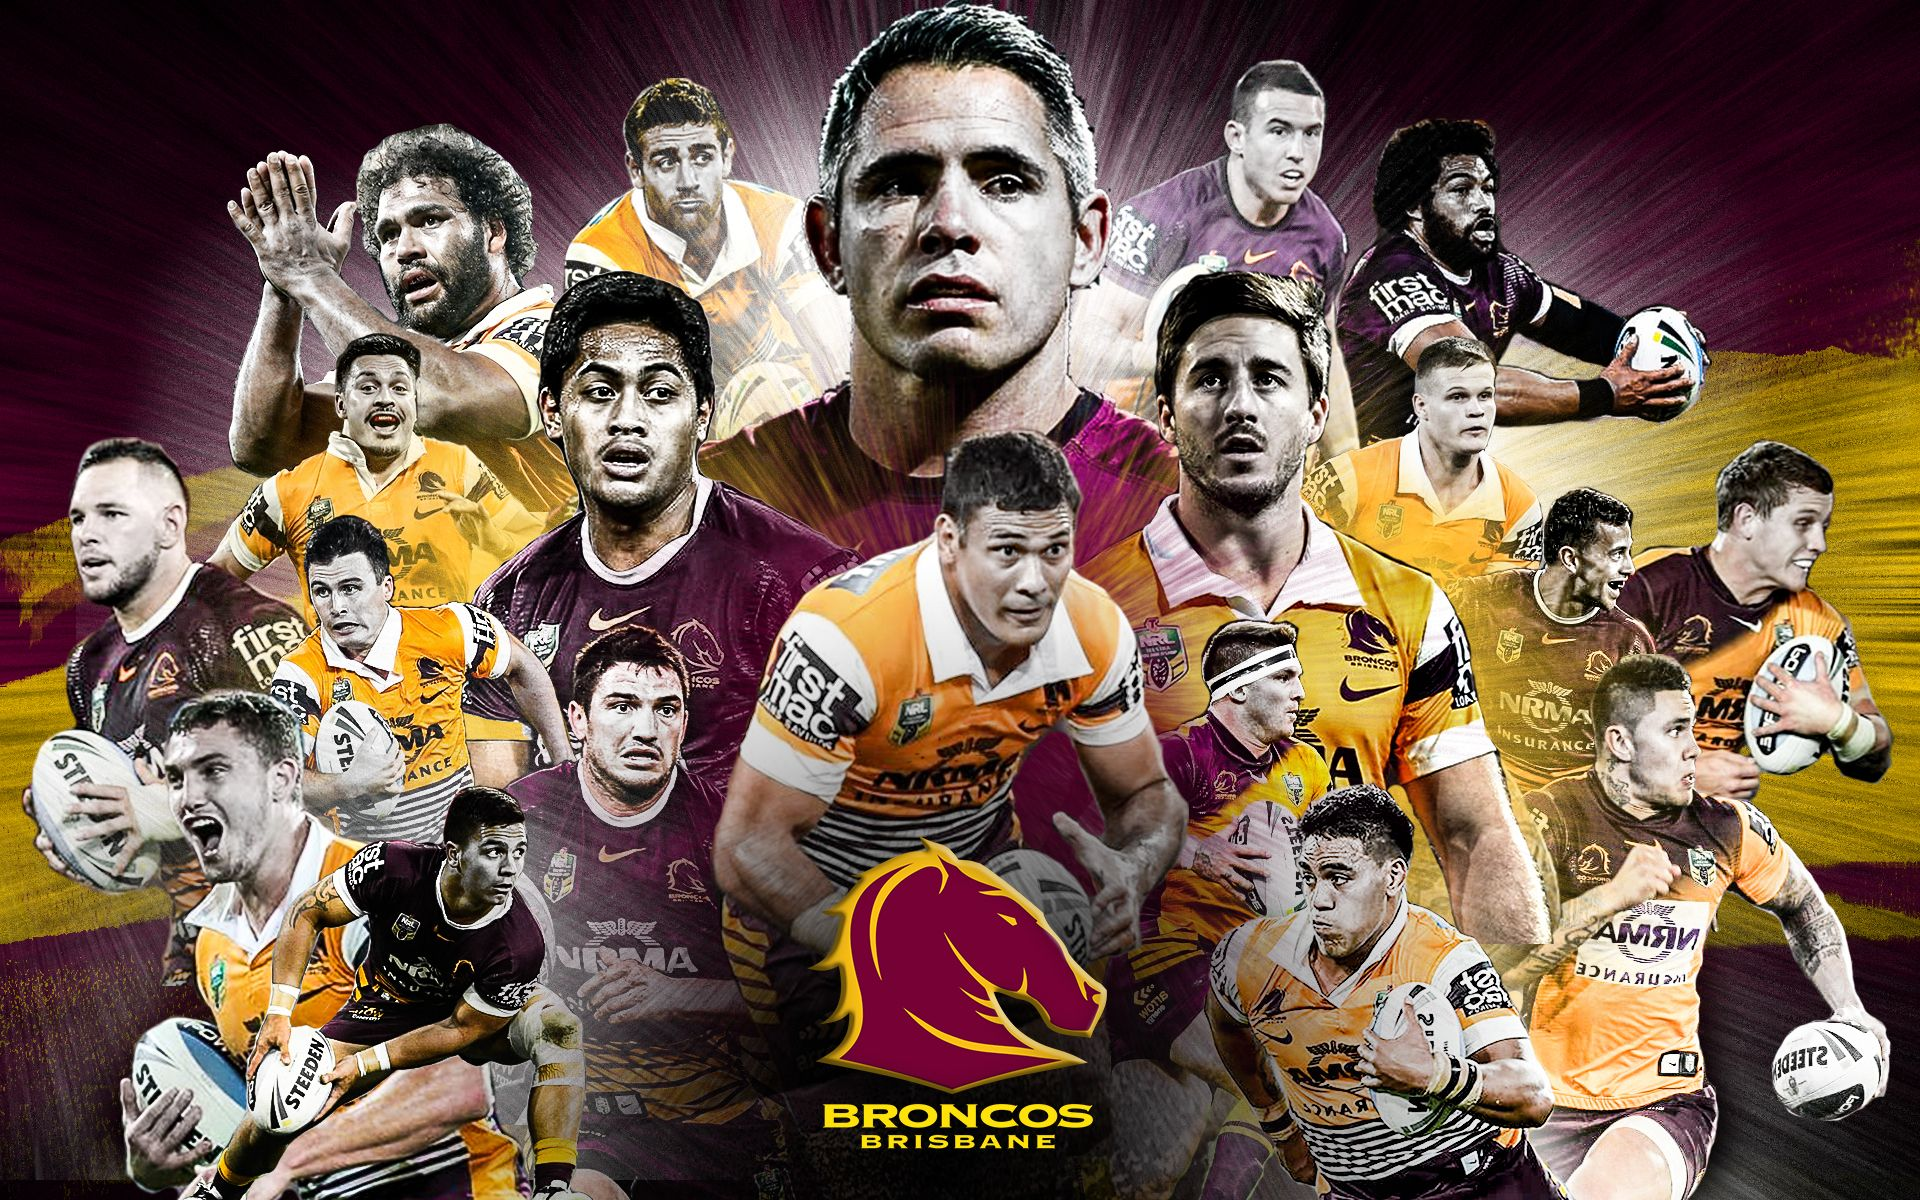 Brisbane Broncos Wallpaper Sports Graphic Broncos Wallpaper Brisbane Broncos Broncos